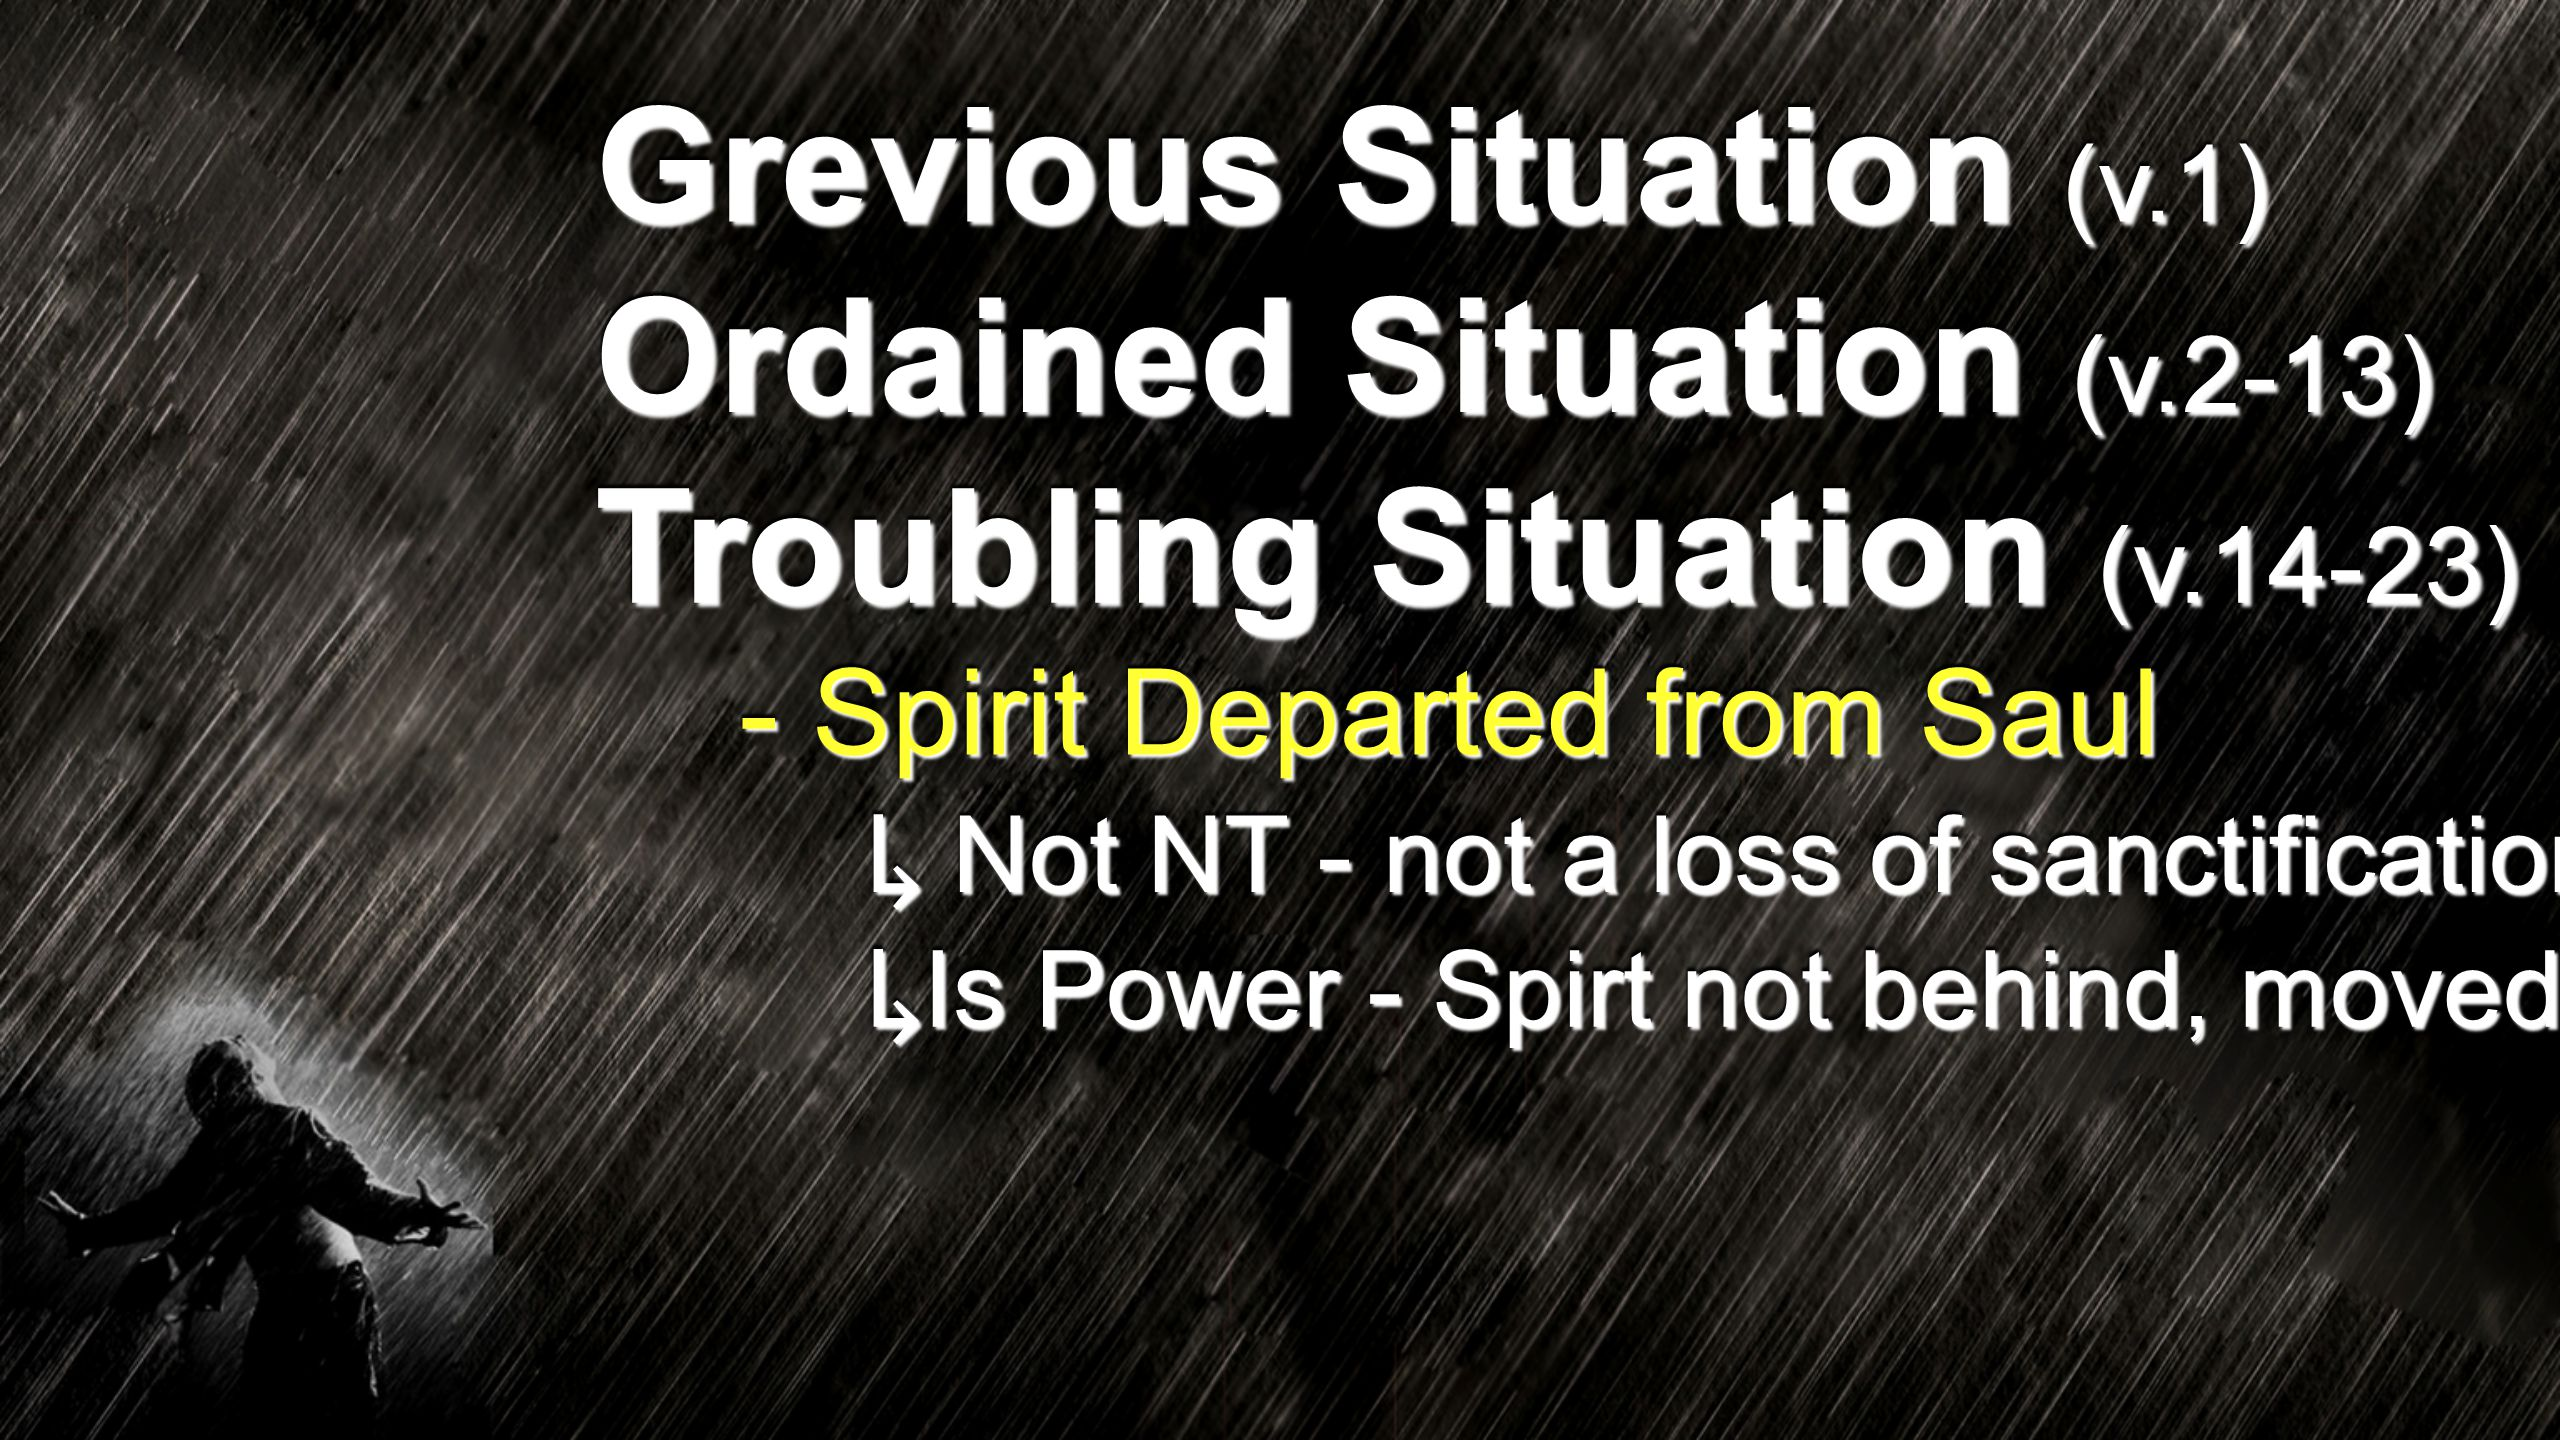 Grevious Situation (v.1) Ordained Situation (v.2-13) Troubling Situation (v.14-23) - Spirit Departed from Saul ↳ Not NT - not a loss of sanctification ↳ Is Power - Spirt not behind, moved